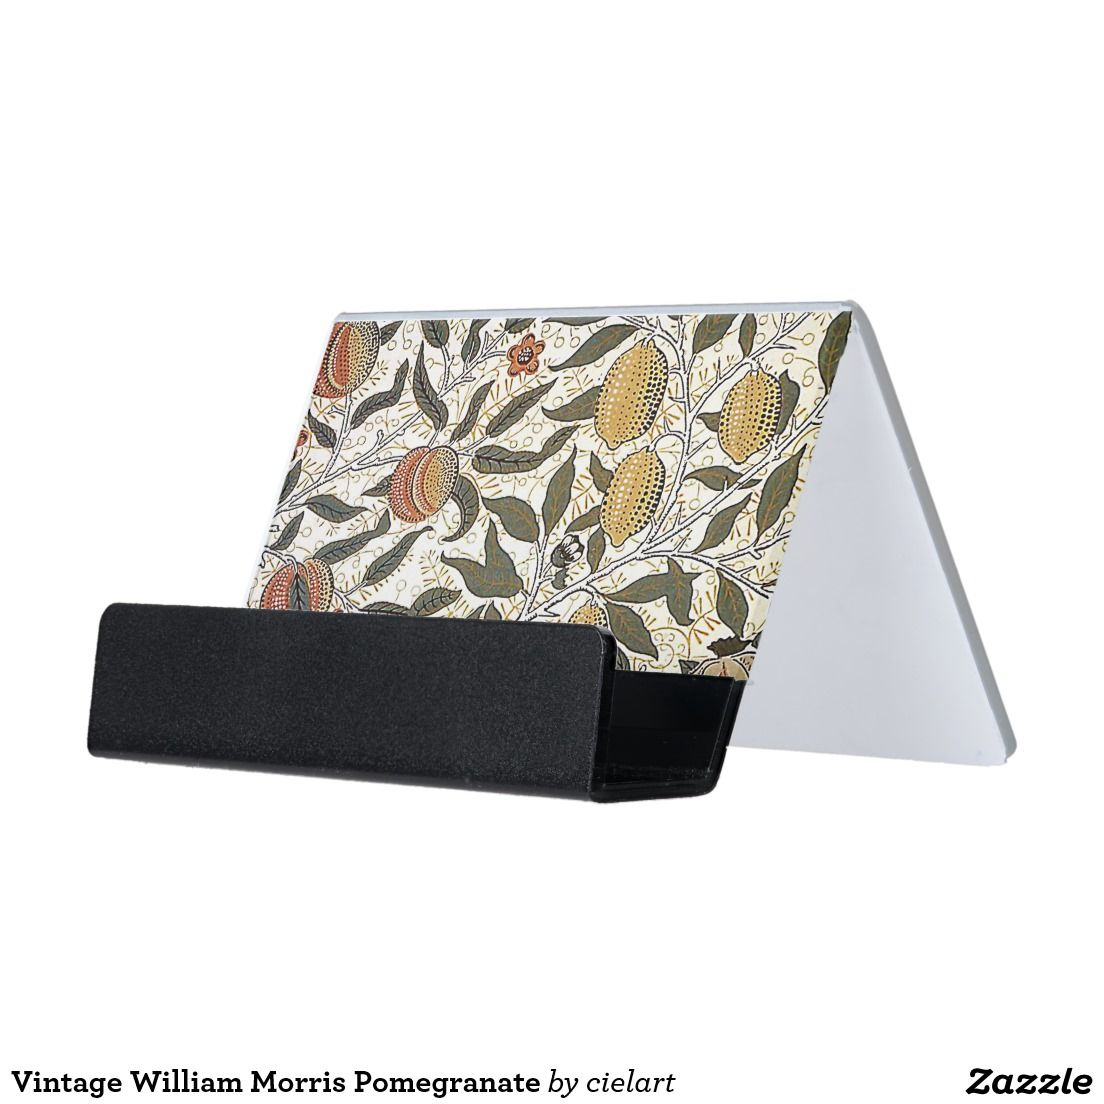 vintage william morris pomegranate desk business card holder